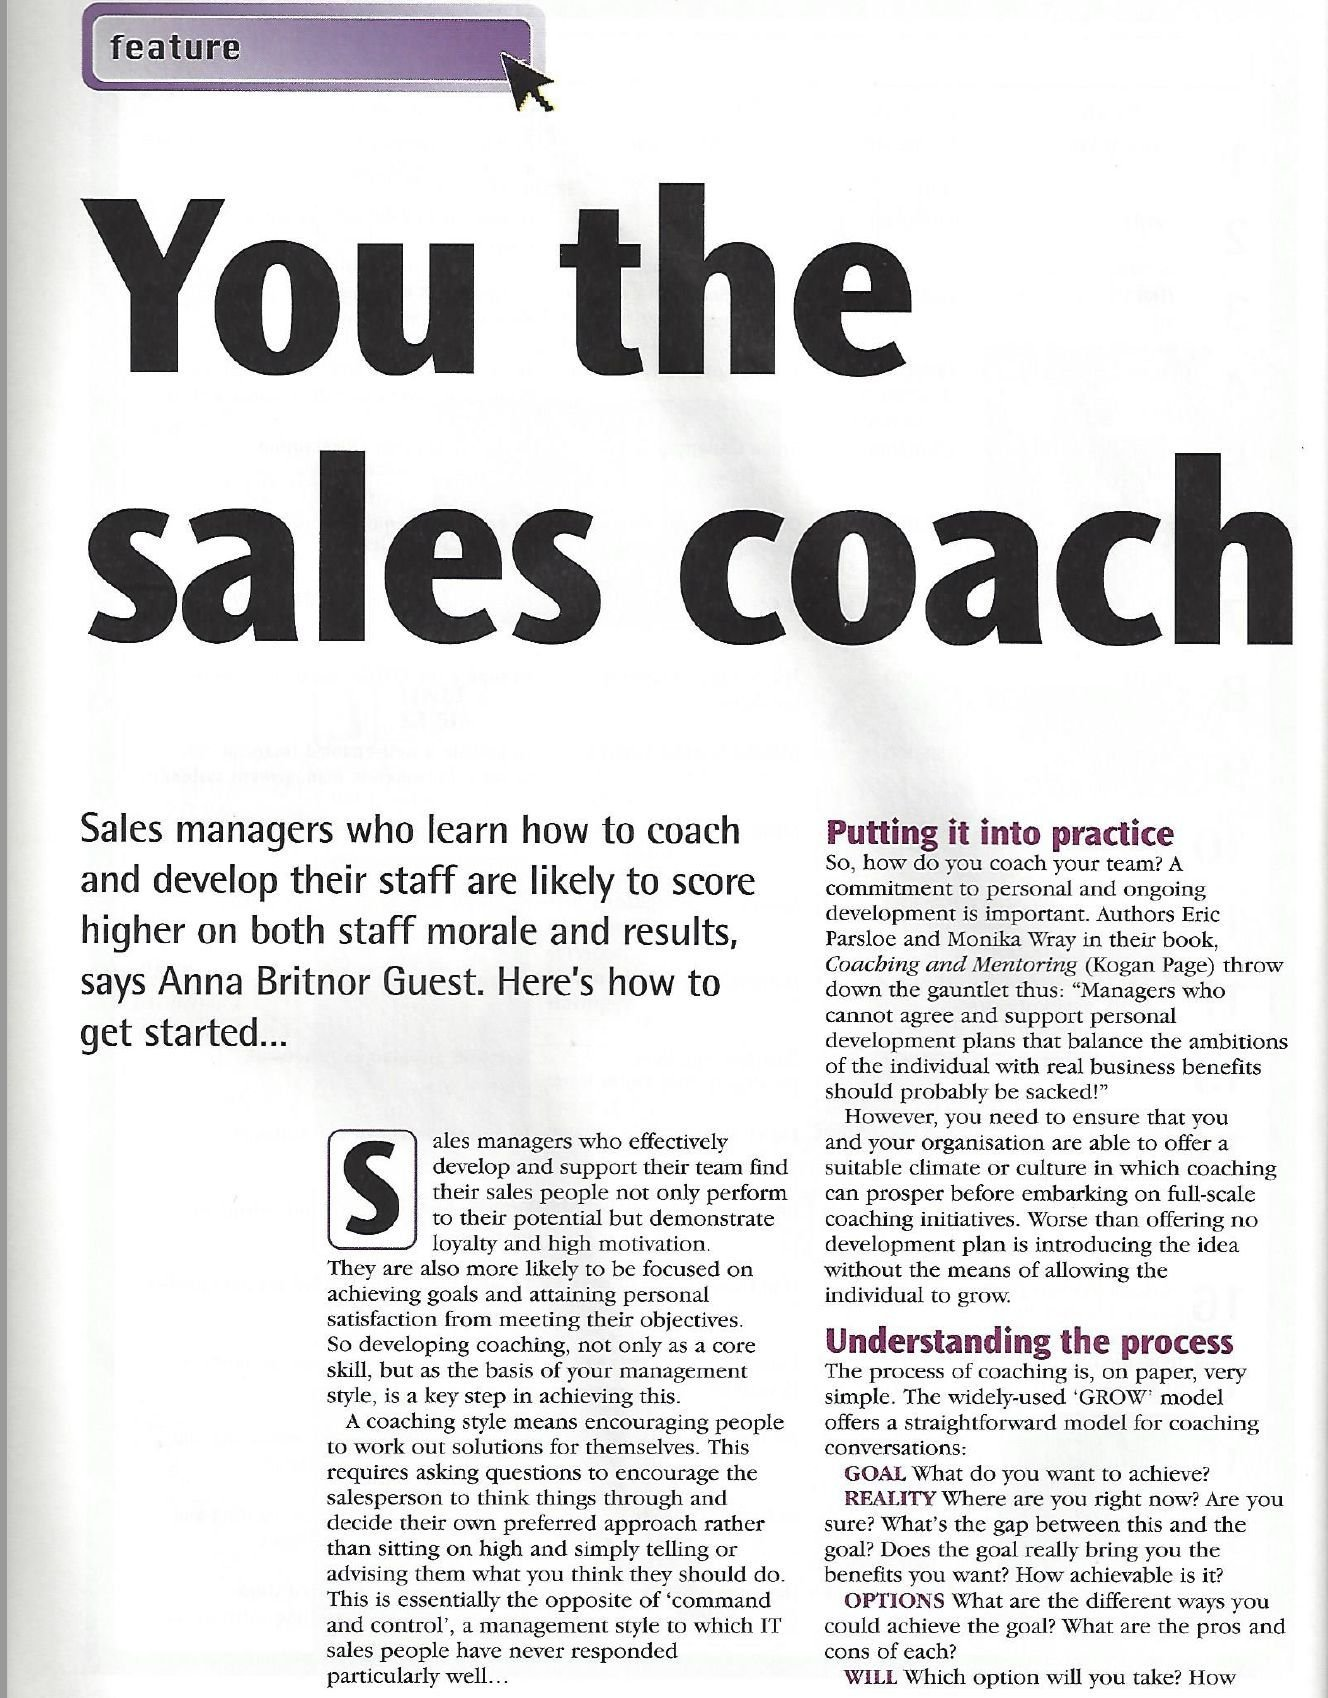 You the sales coach article